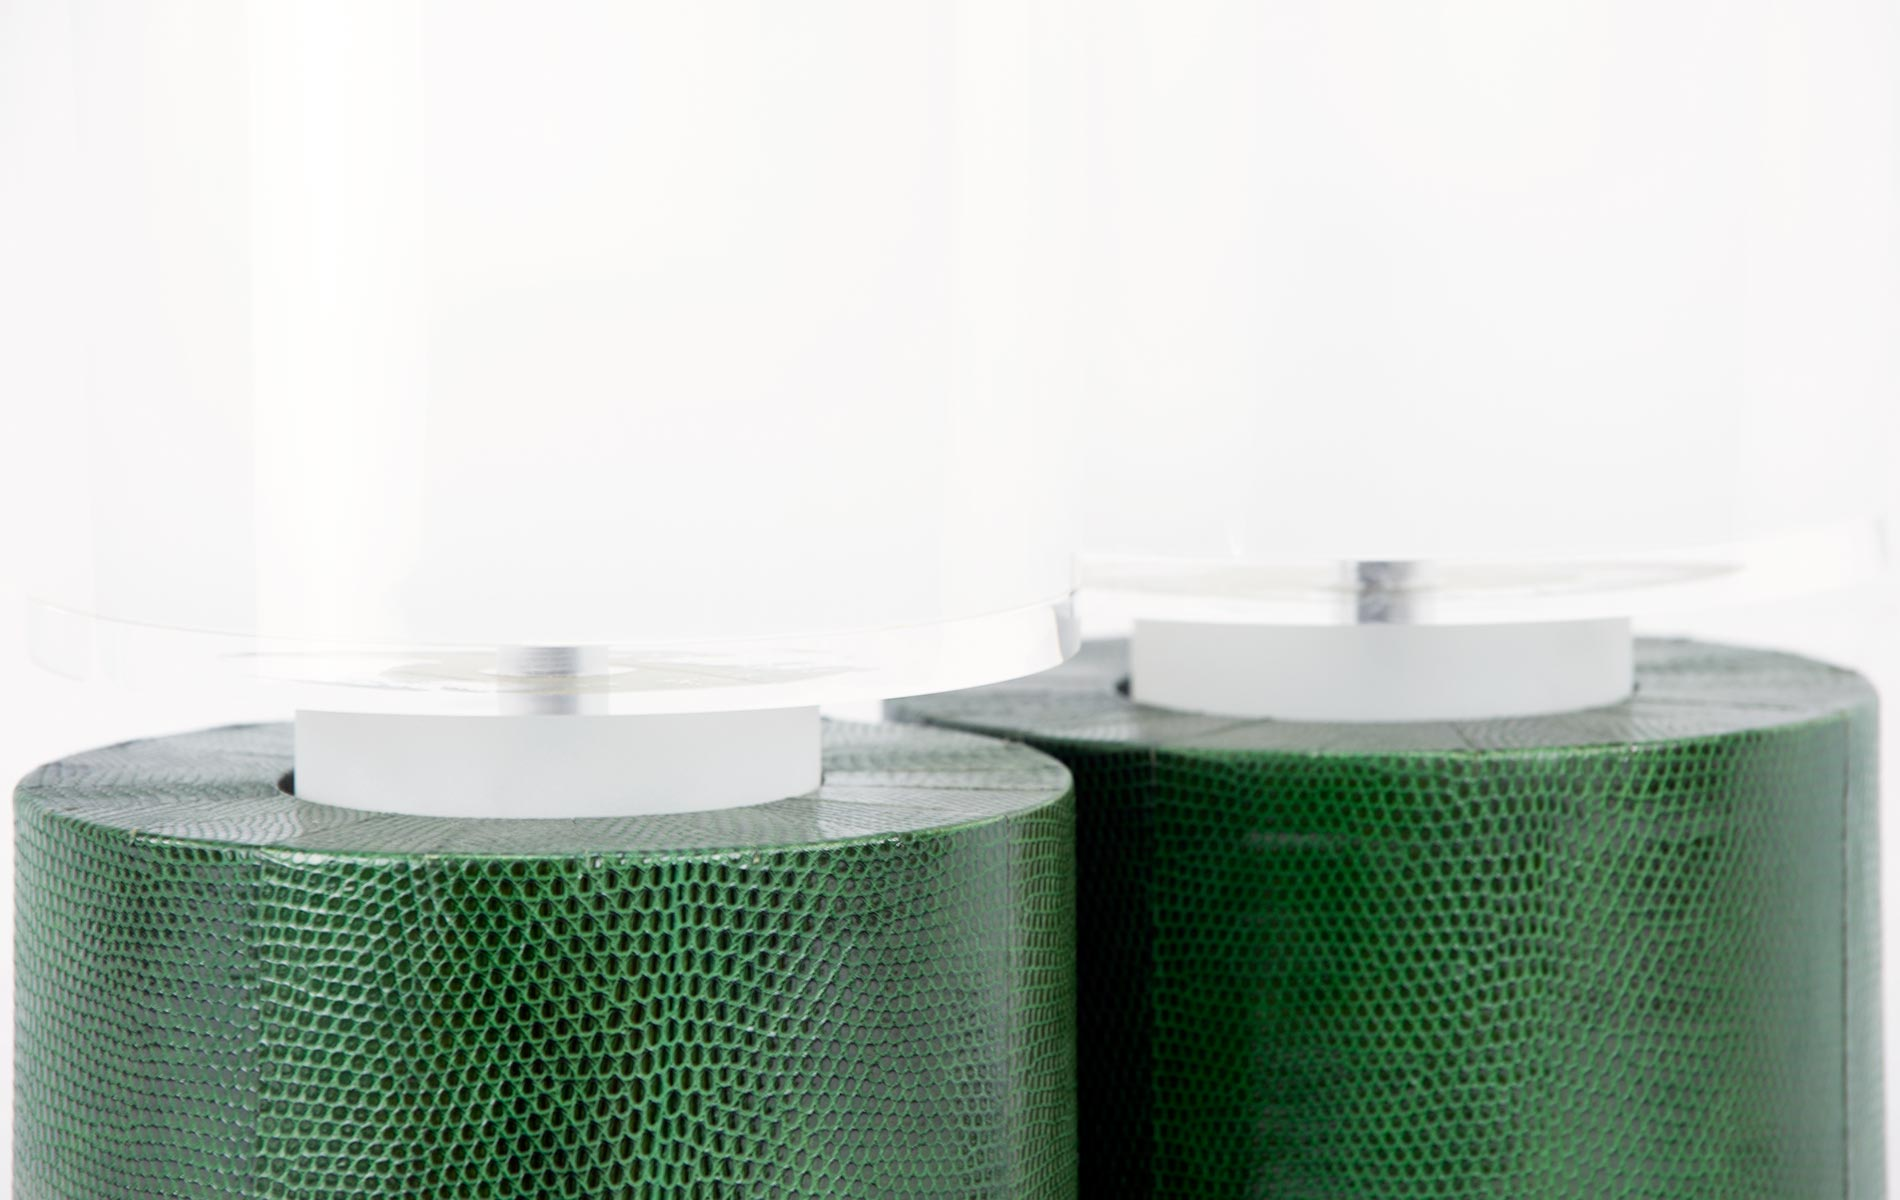 ROUND GREEN / Unicodesign by Stefano Palcani